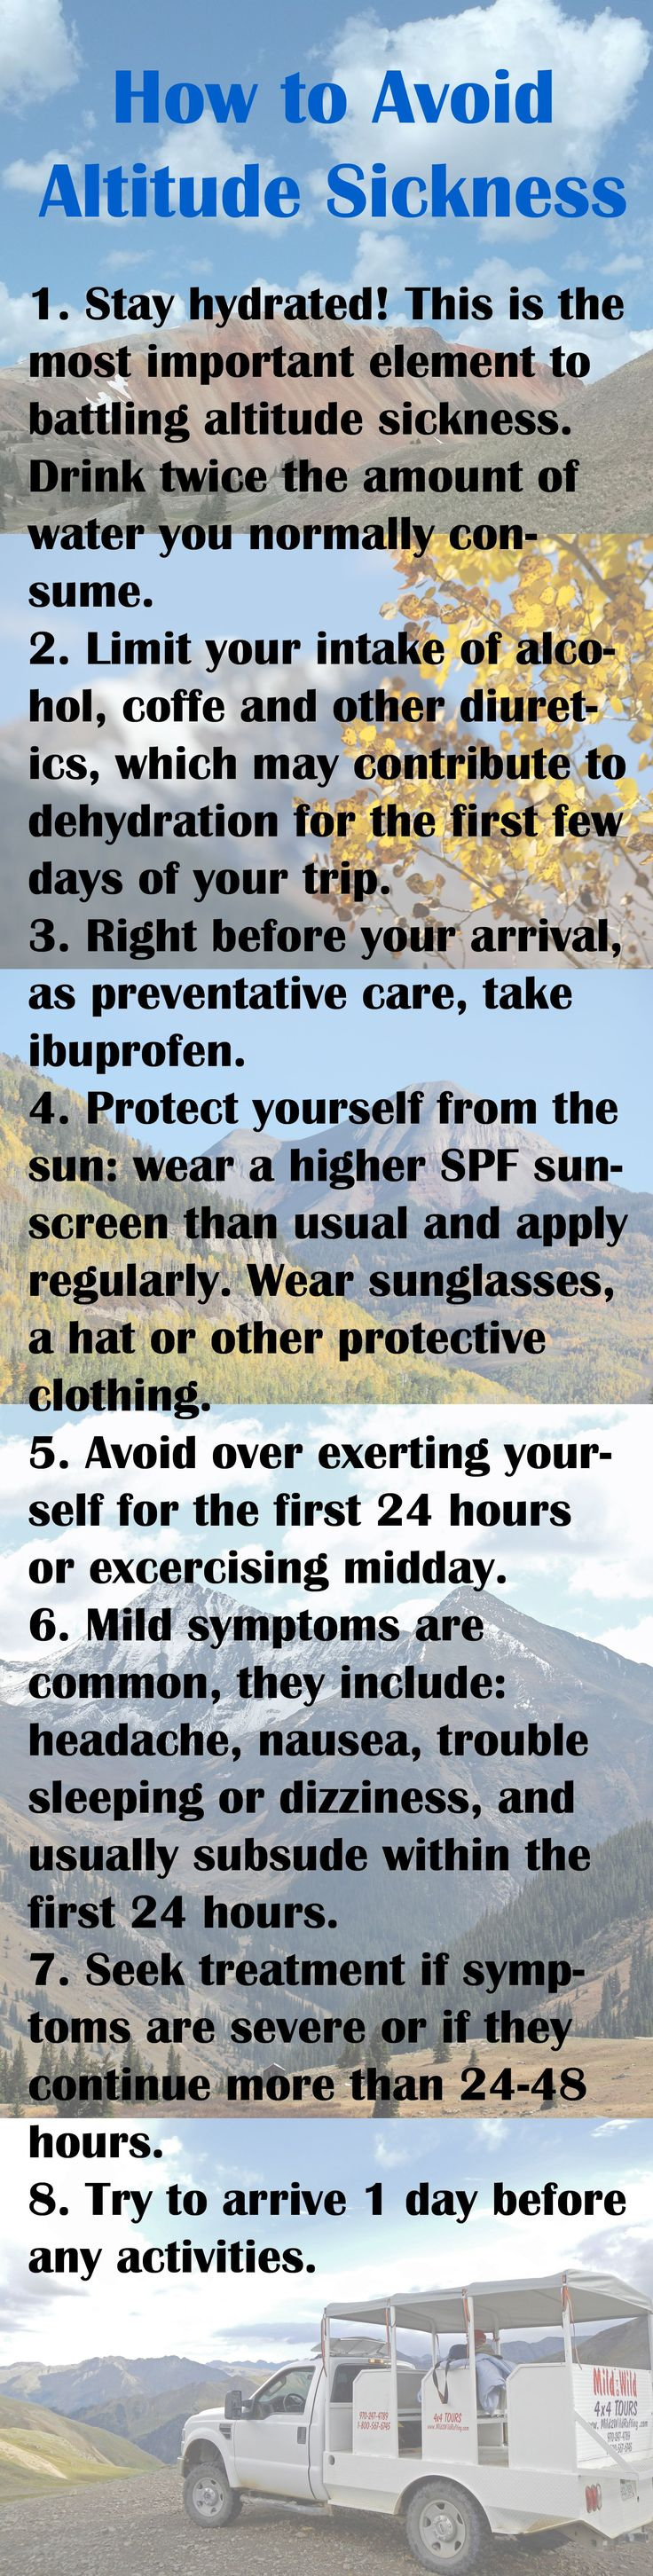 Visiting somewhere that's at a higher elevation than you're used to? Check out these tips to avoid Altitude Sickness!